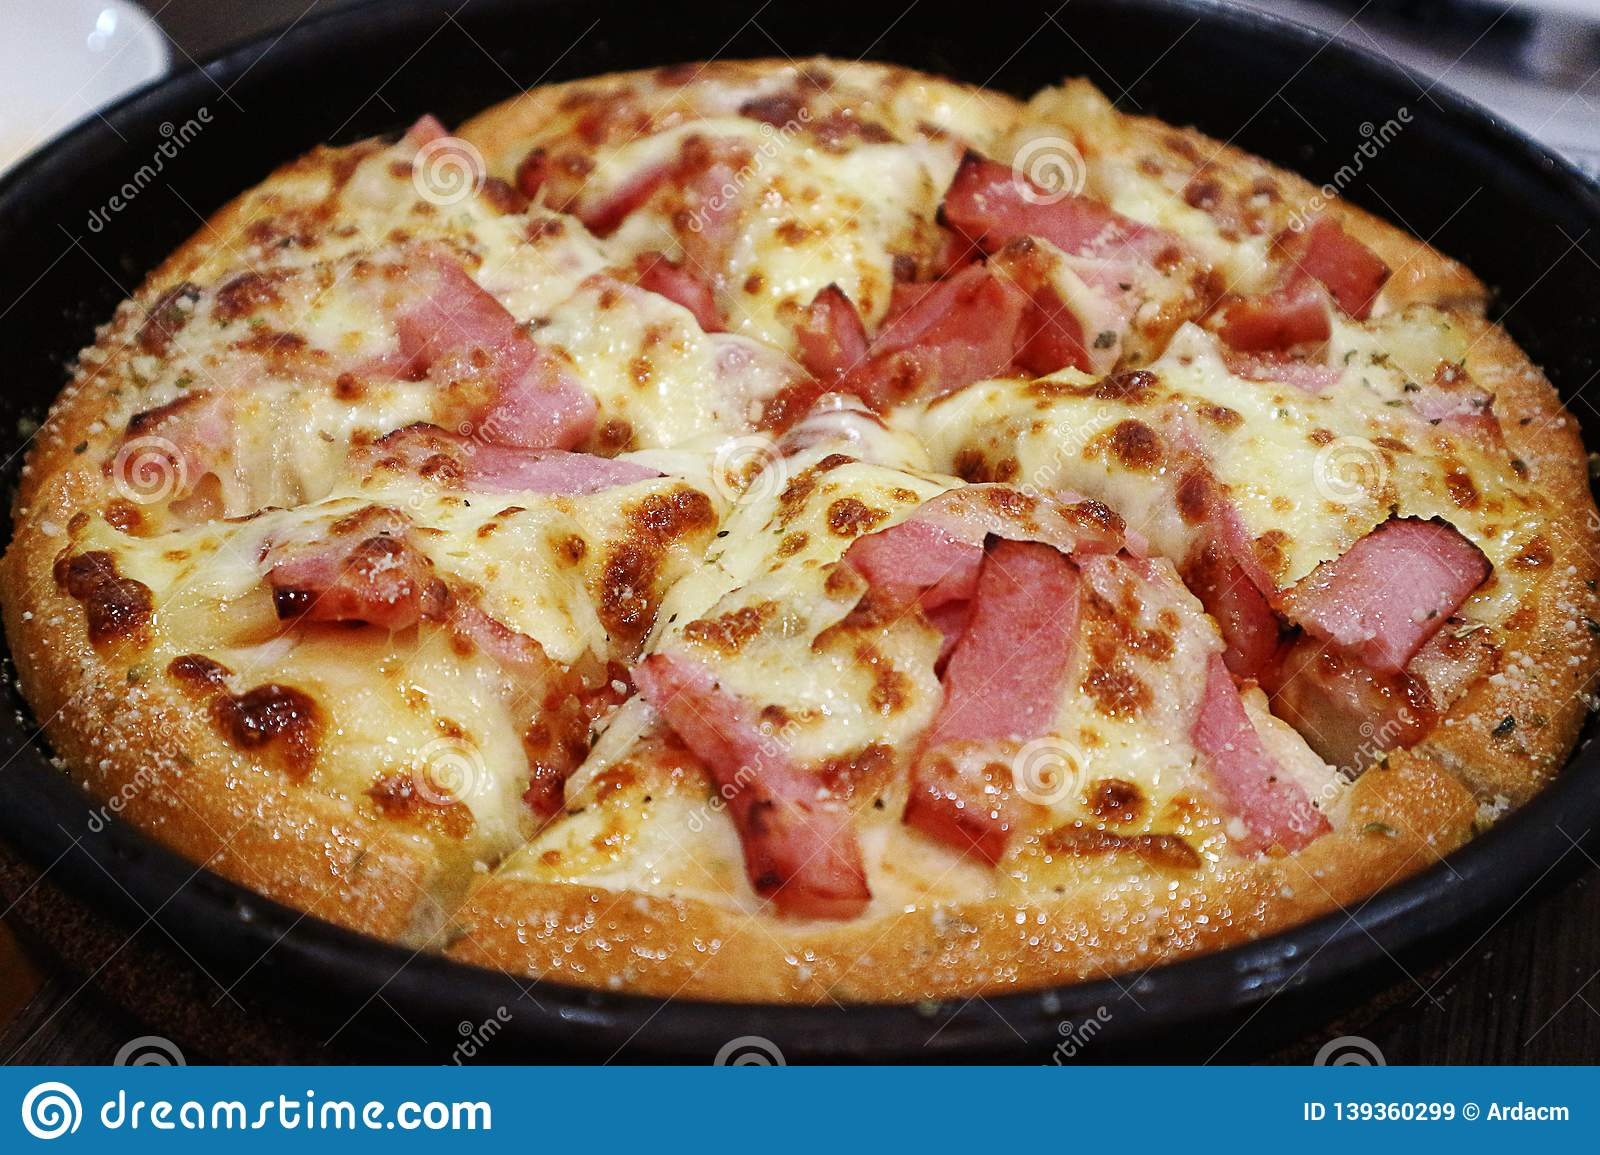 Closeup of Delicious Bacon and Cheese Pizza